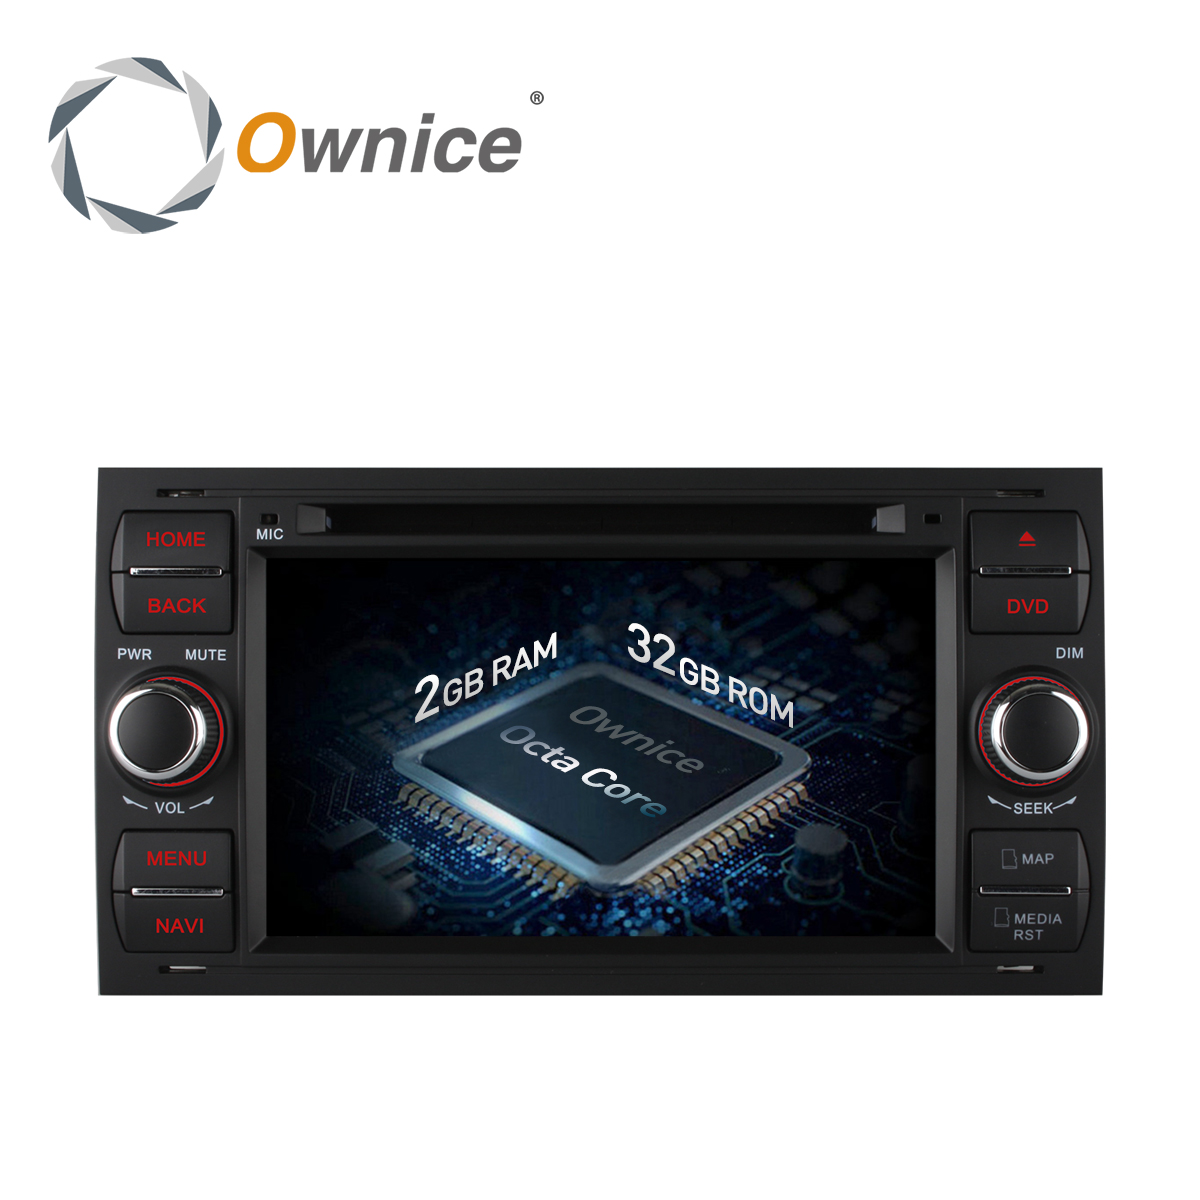 Ownice 4G SIM LTE Android 6.0 Octa Core 32G ROM Car DVD GPS Radio For Ford Mondeo S-max Focus C-MAX Galaxy Fiesta Form Fusion